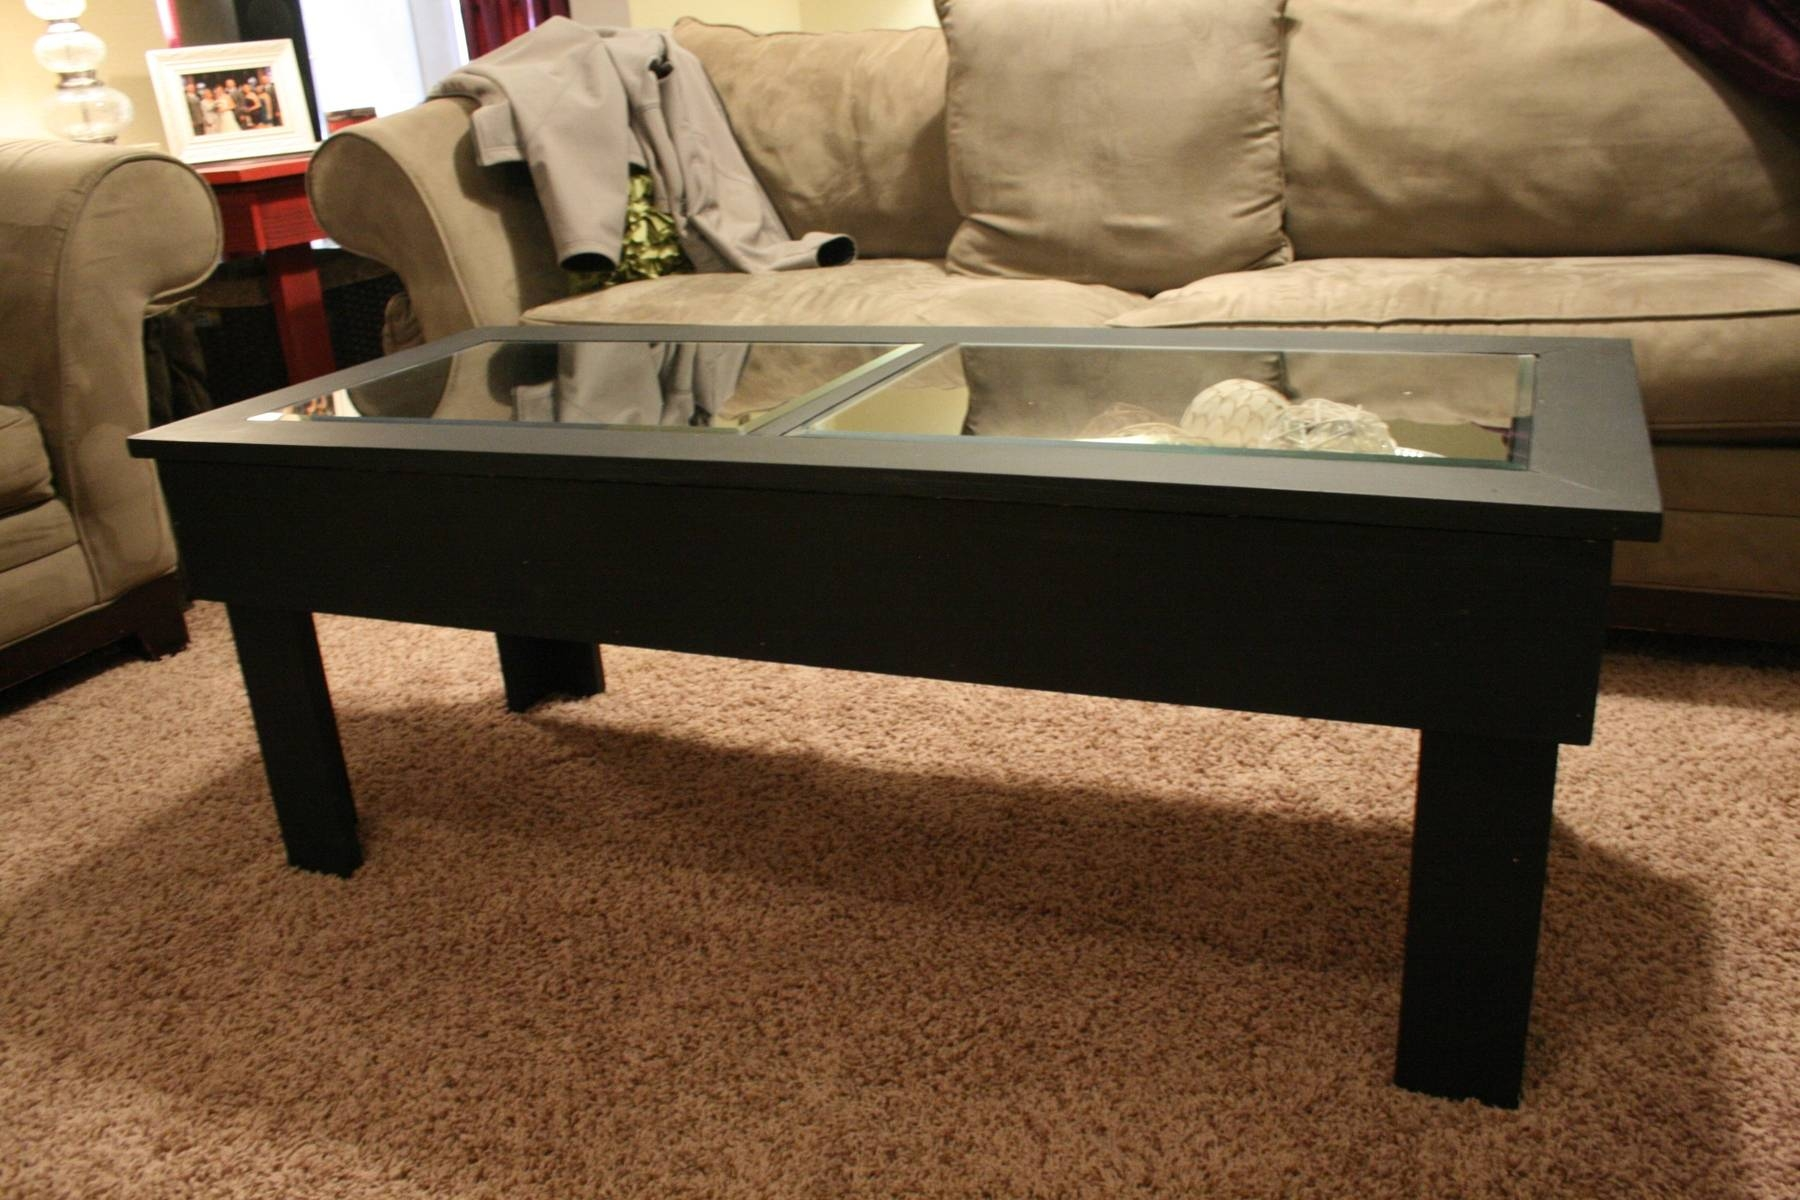 Glass Coffee Tables: Charming Dark Wood Coffee Table With Glass with Dark Wood Coffee Tables (Image 12 of 15)